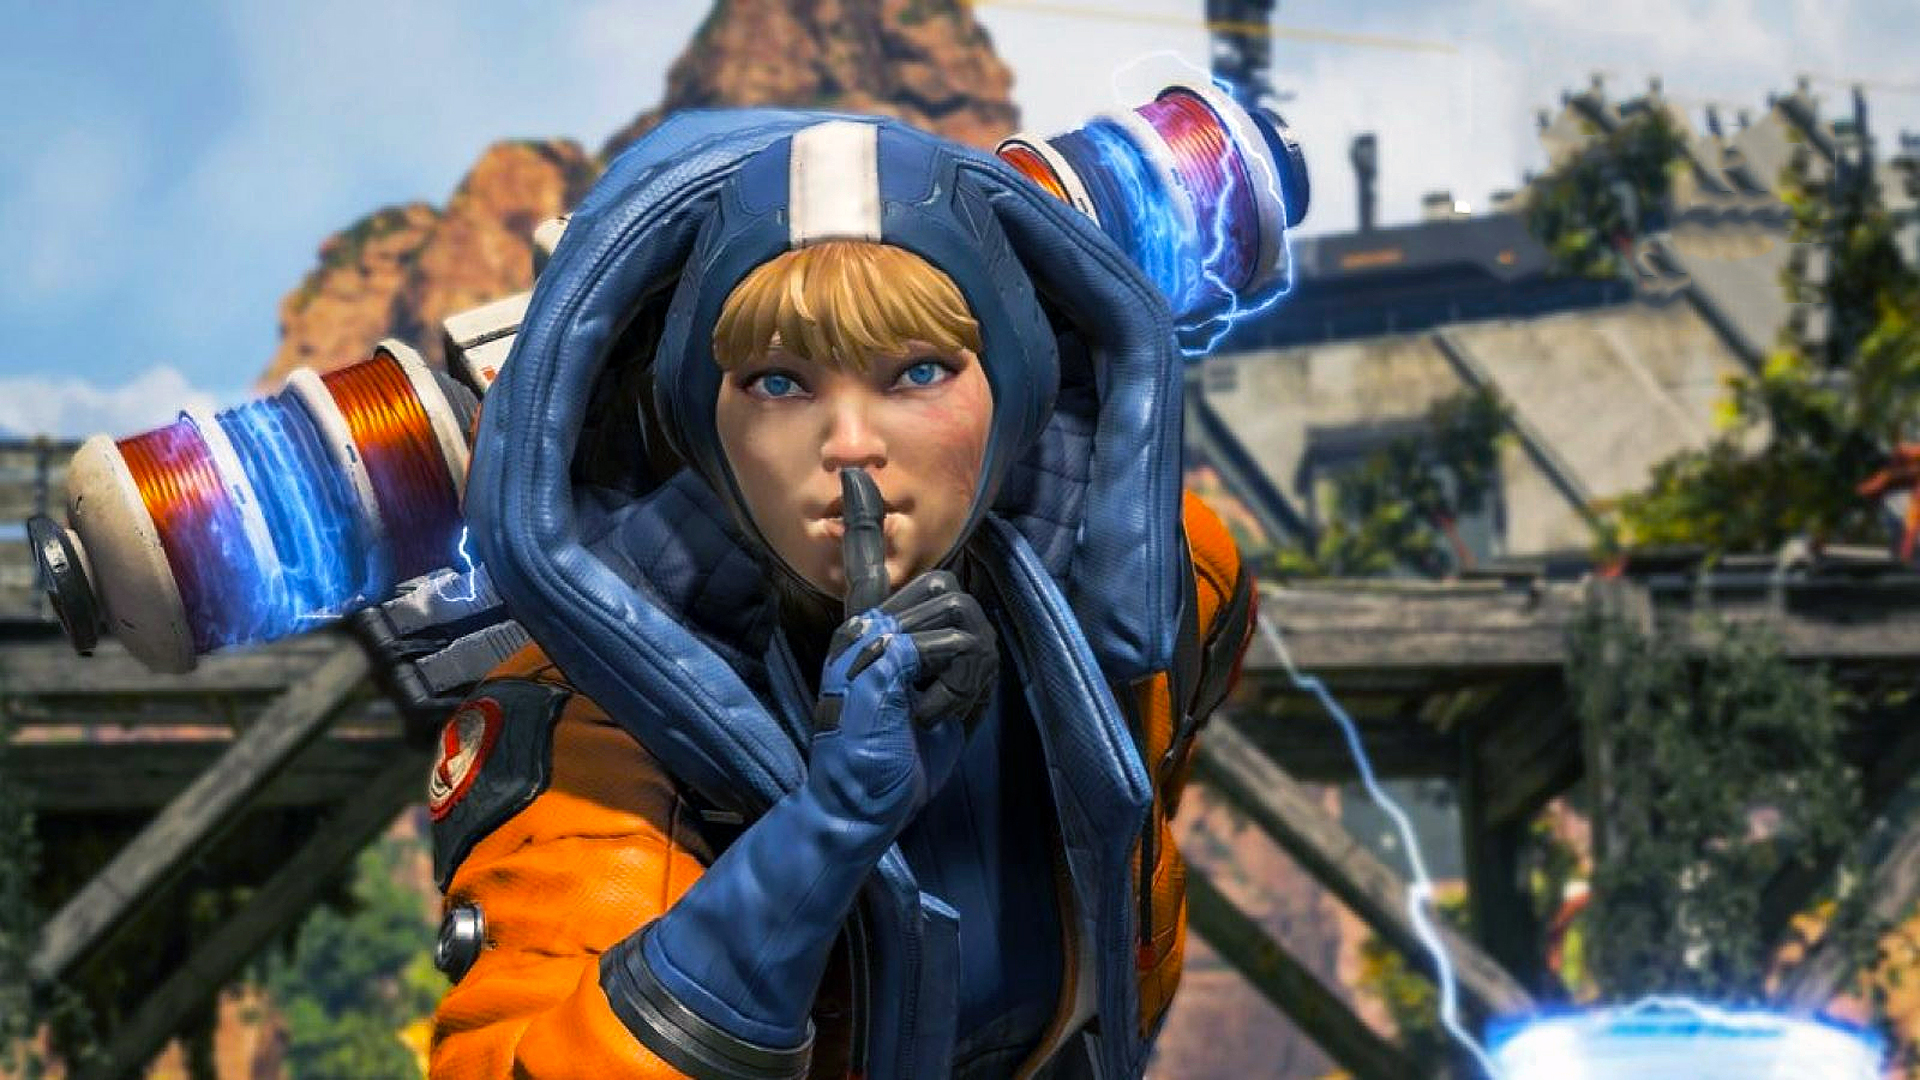 Check Out The Apex Legends Ranked Rewards For Series 1